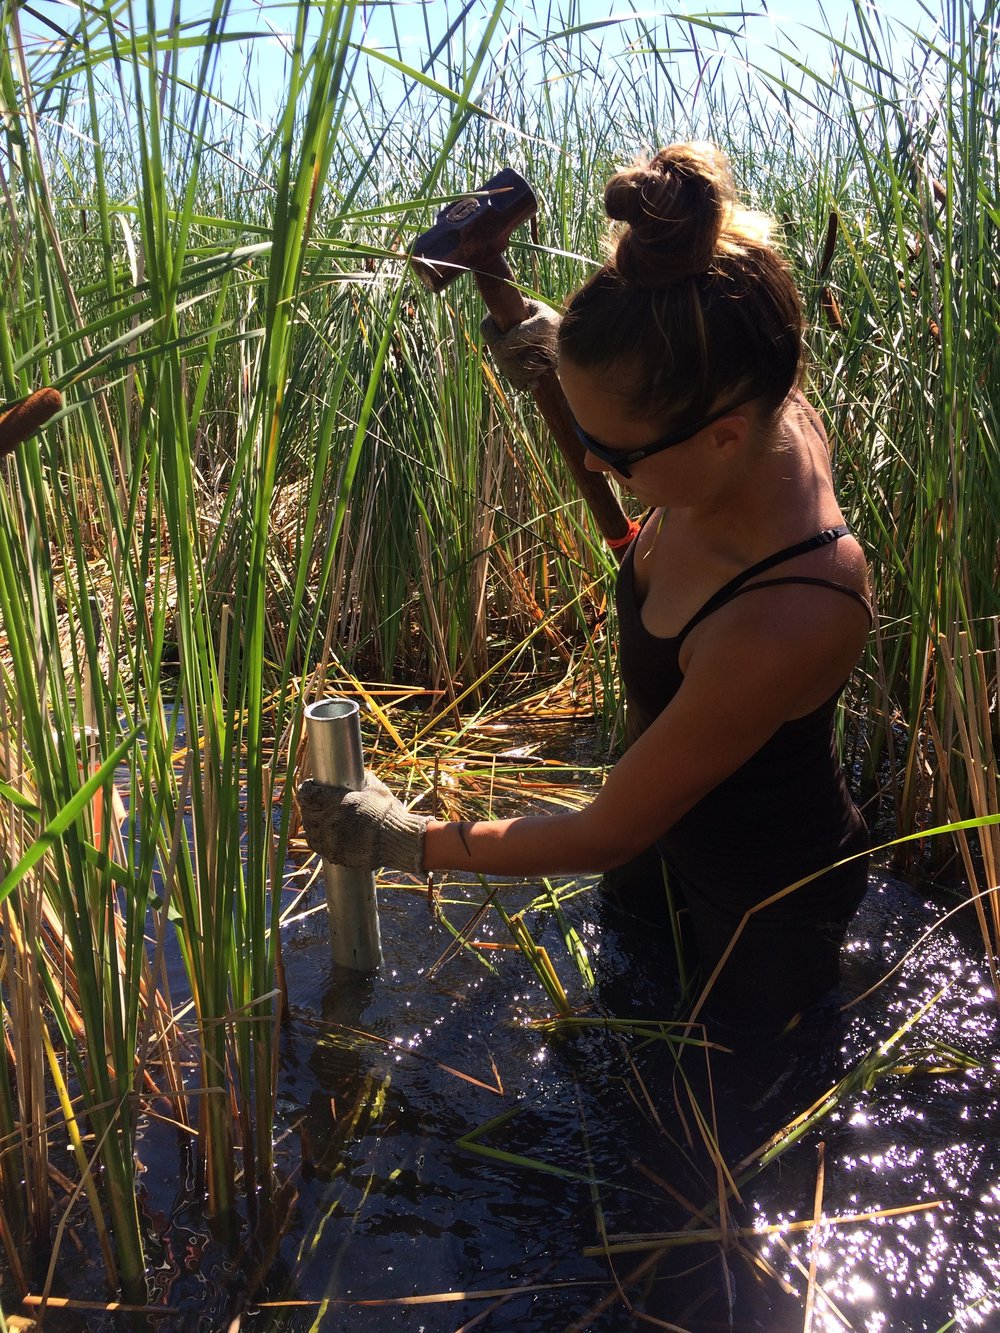 Graduate student Kelsey Berke collects sediment cores from one of the control plots. By analyzing the nitrogen and phosphorus content of the sediment in different treatments, she is hoping to learn how large-scale macrophyte removal will impact wetland nutrient cycling.